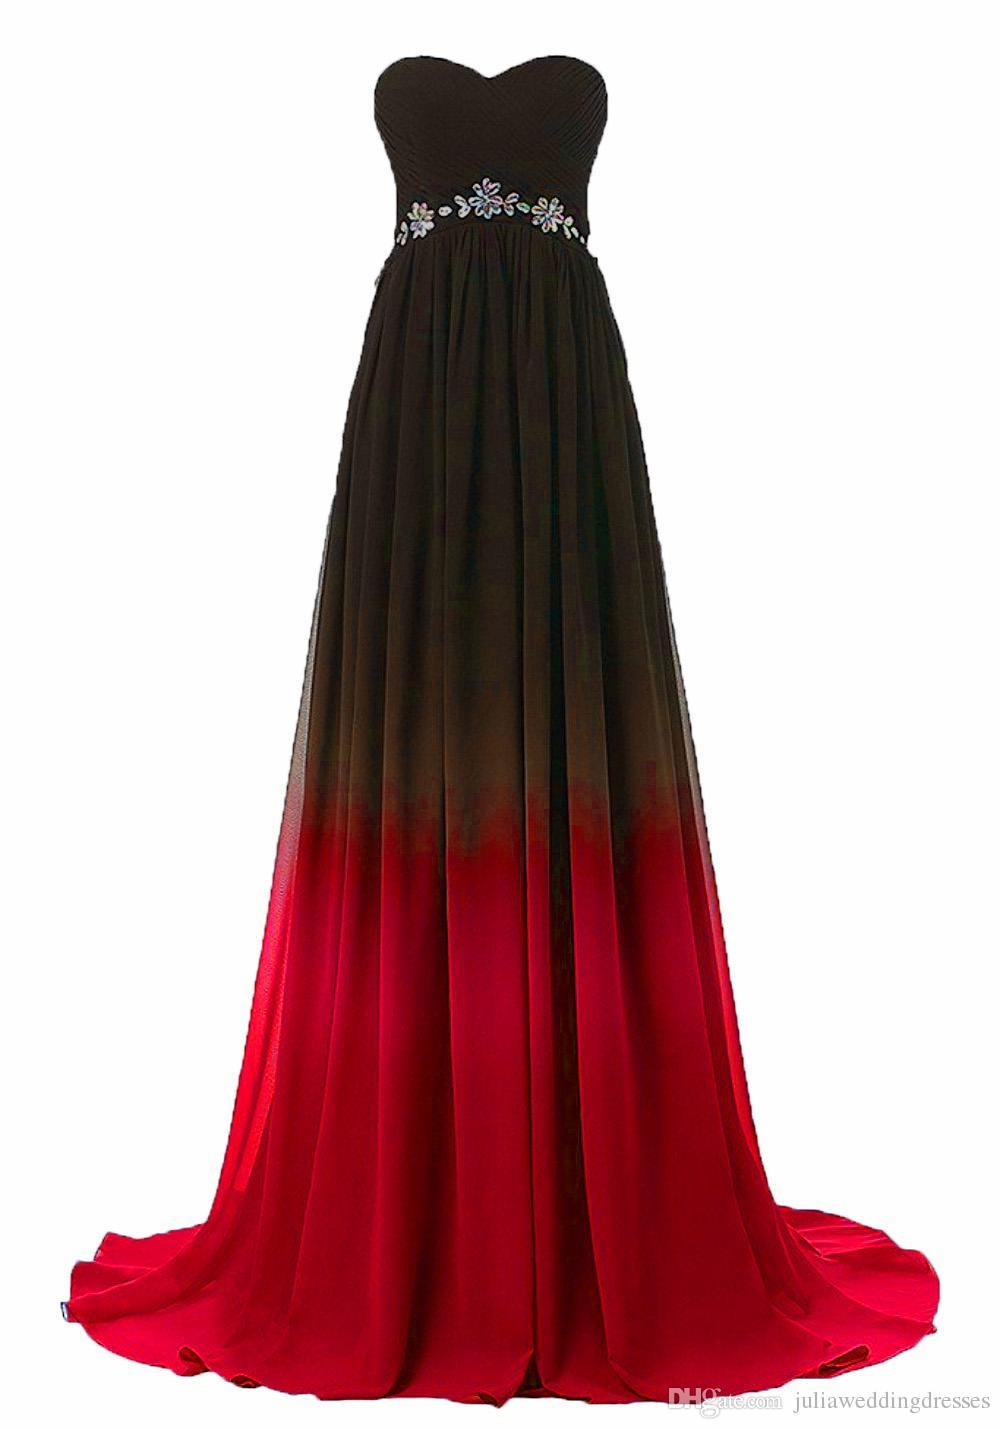 b20f2dc28e8 A Line Sweetheart Gradient Chiffon Prom Dresses With Beading Floor Length  Long Evening Gowns With Corset Back Elegant Formal Wear Colorful Prom  Dresses Cool ...